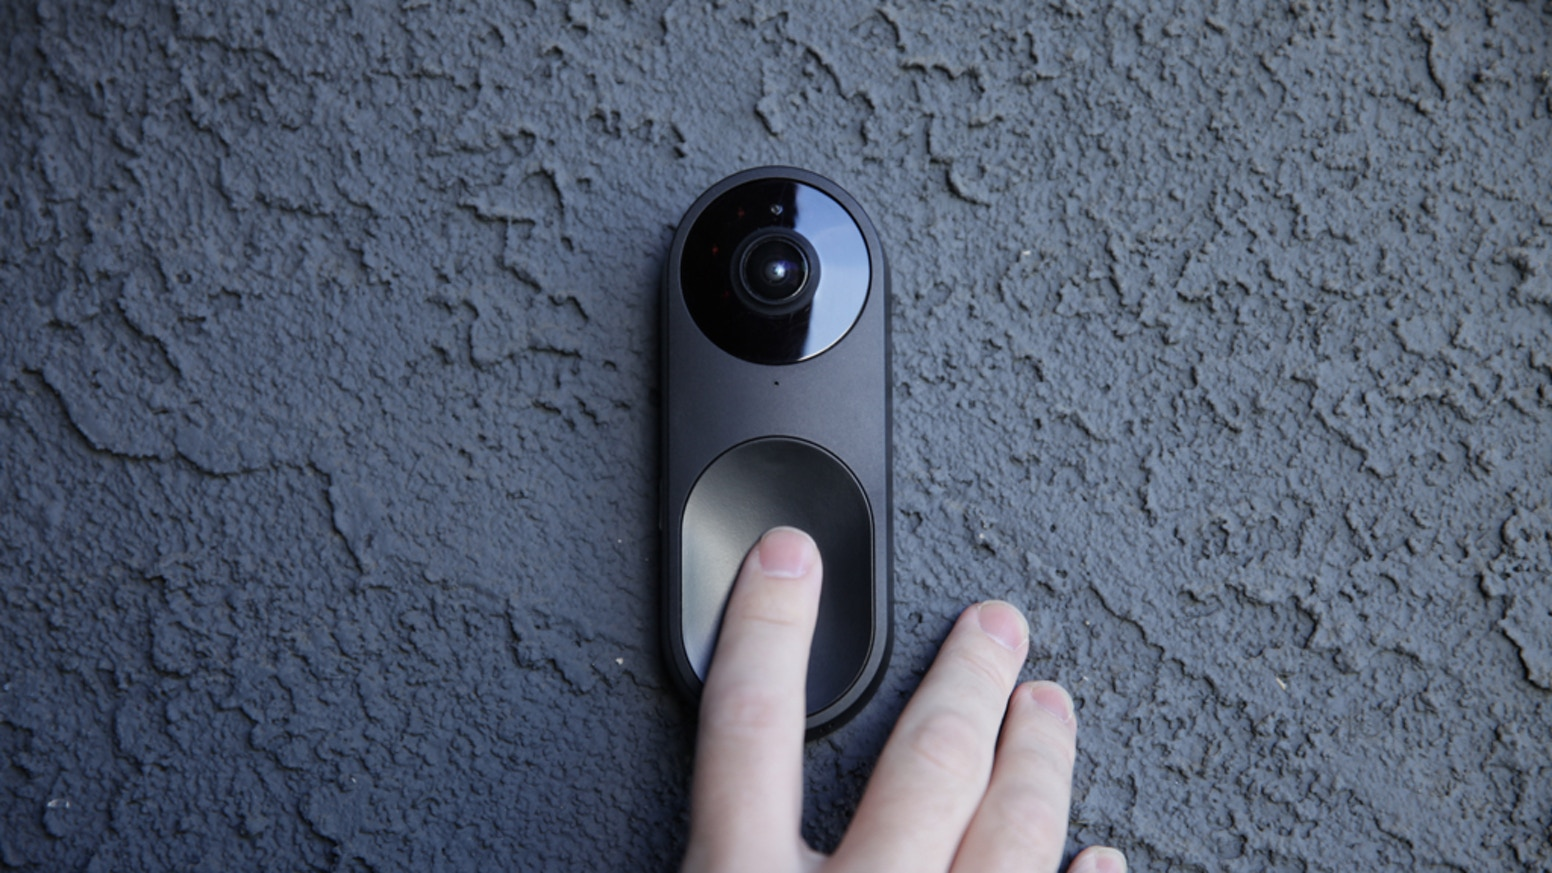 Recognize, talk and instruct your visitors, live streaming and advanced motion alert at your front door 24/7, Alexa compatible.